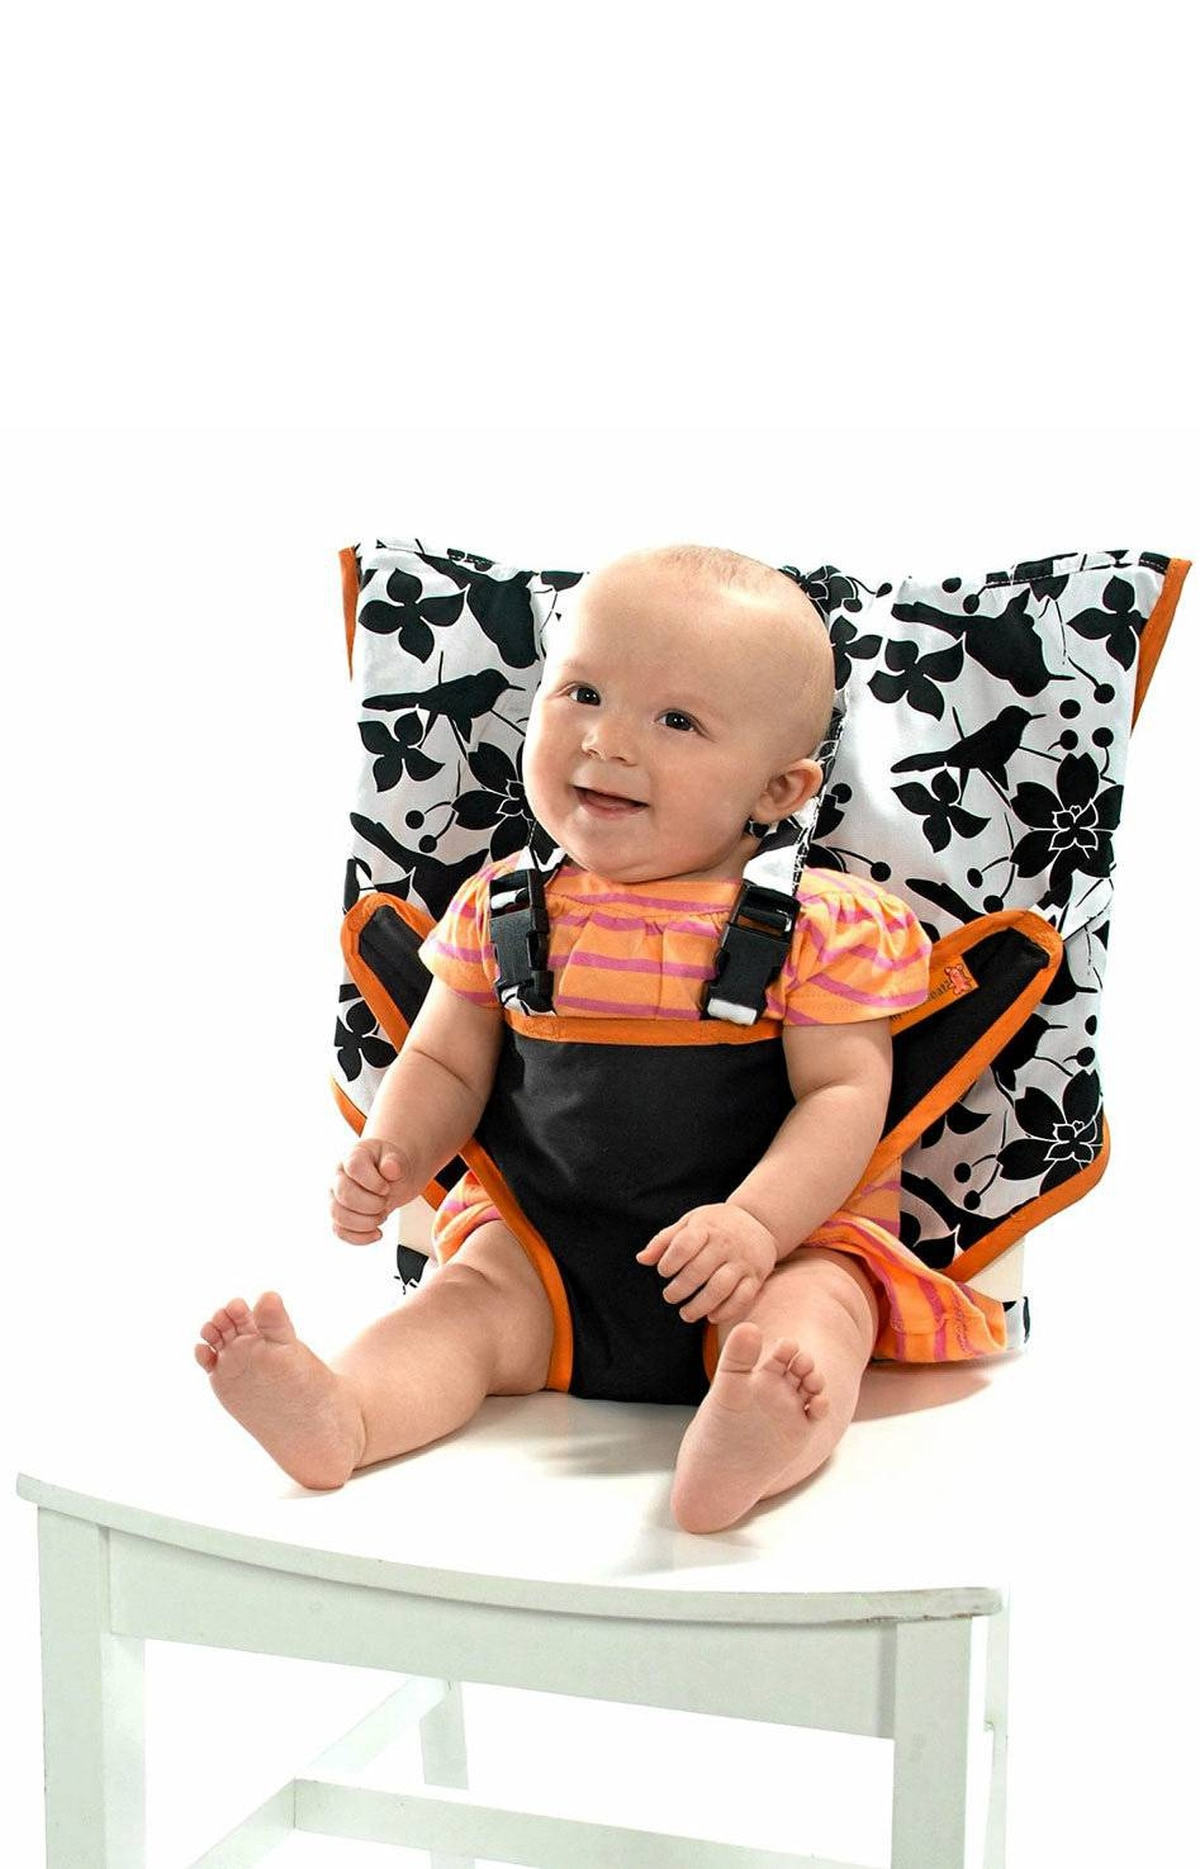 Sitting pretty Take your tot out for dinner in style with My Little Seat. Made from colourful machine-washable fabric, the portable high chair slips onto the back of most seats and comes with a five-point harness that keeps baby secure. It also folds down to the size of a diaper and tucks into its own storage bag. $29.99 (U.S.); mylittleseat.com